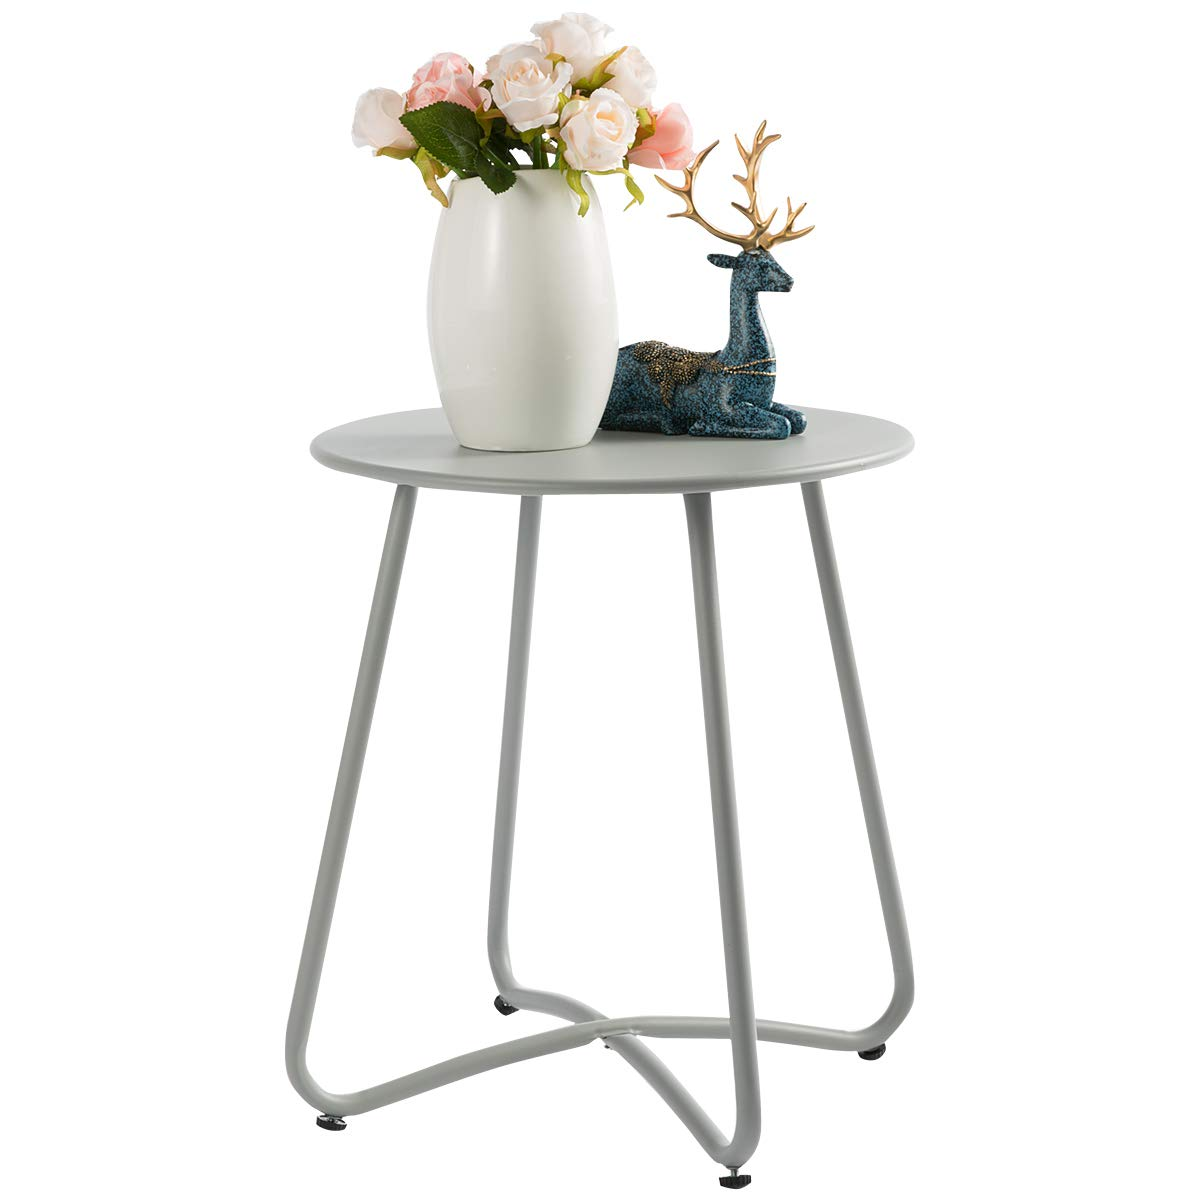 """HollyHOME Small Round Patio Metal Side Snack Table, Accent Anti-Rust Steel Coffee Table for Garden, Modern Weatherproof Outdoor End Table, (H) 17.55"""" x(D) 15.60"""", Grey"""